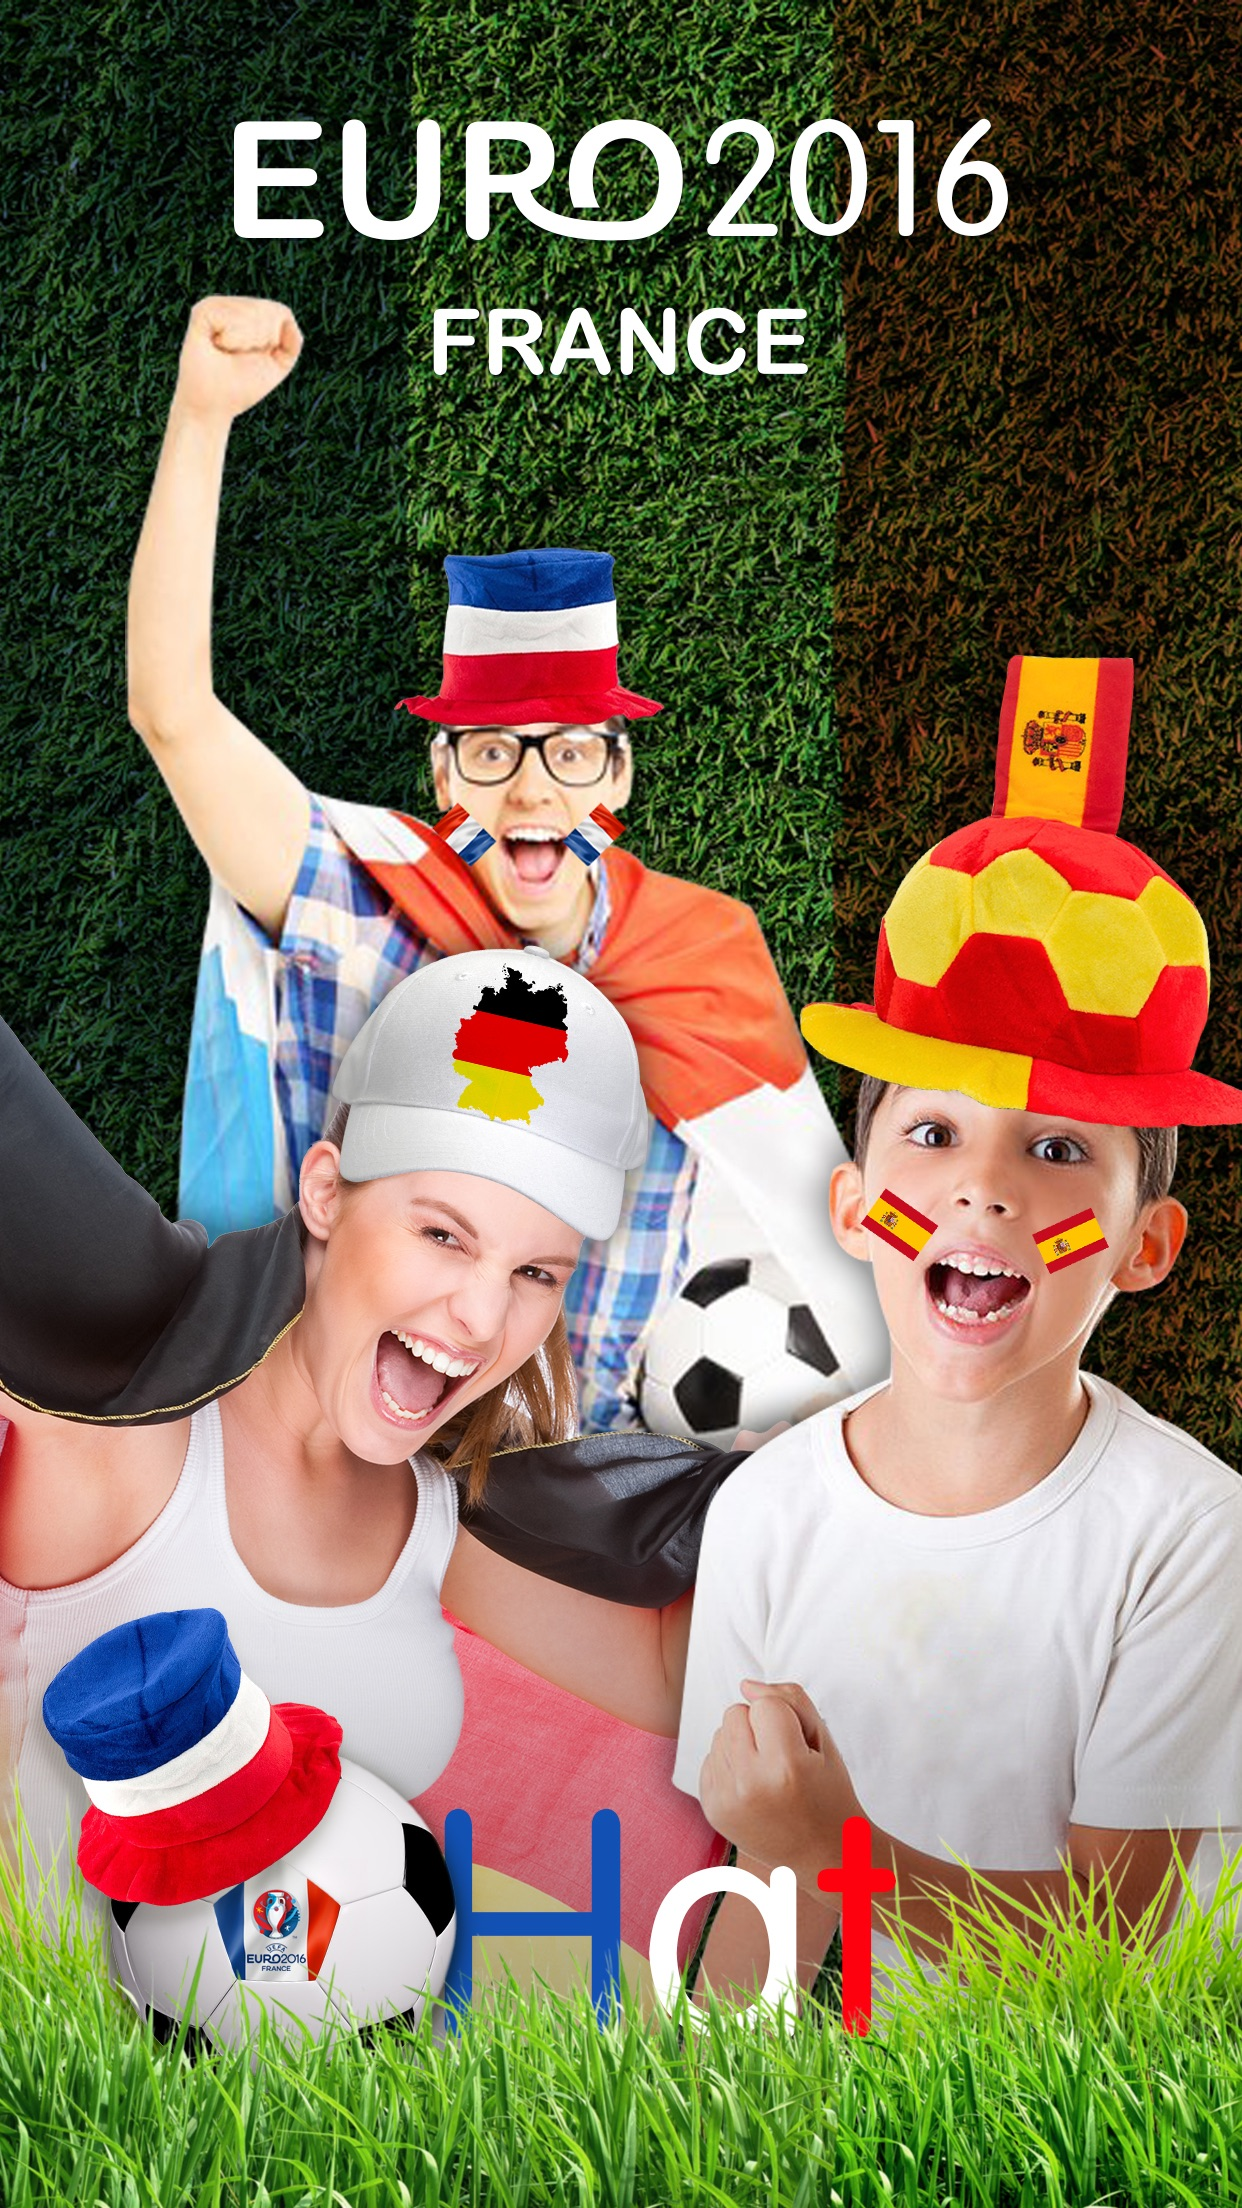 Flag Face Photo Sticker for Euro Cup 2016 - Picture Editor for Football Fans to Support Your National Team Screenshot